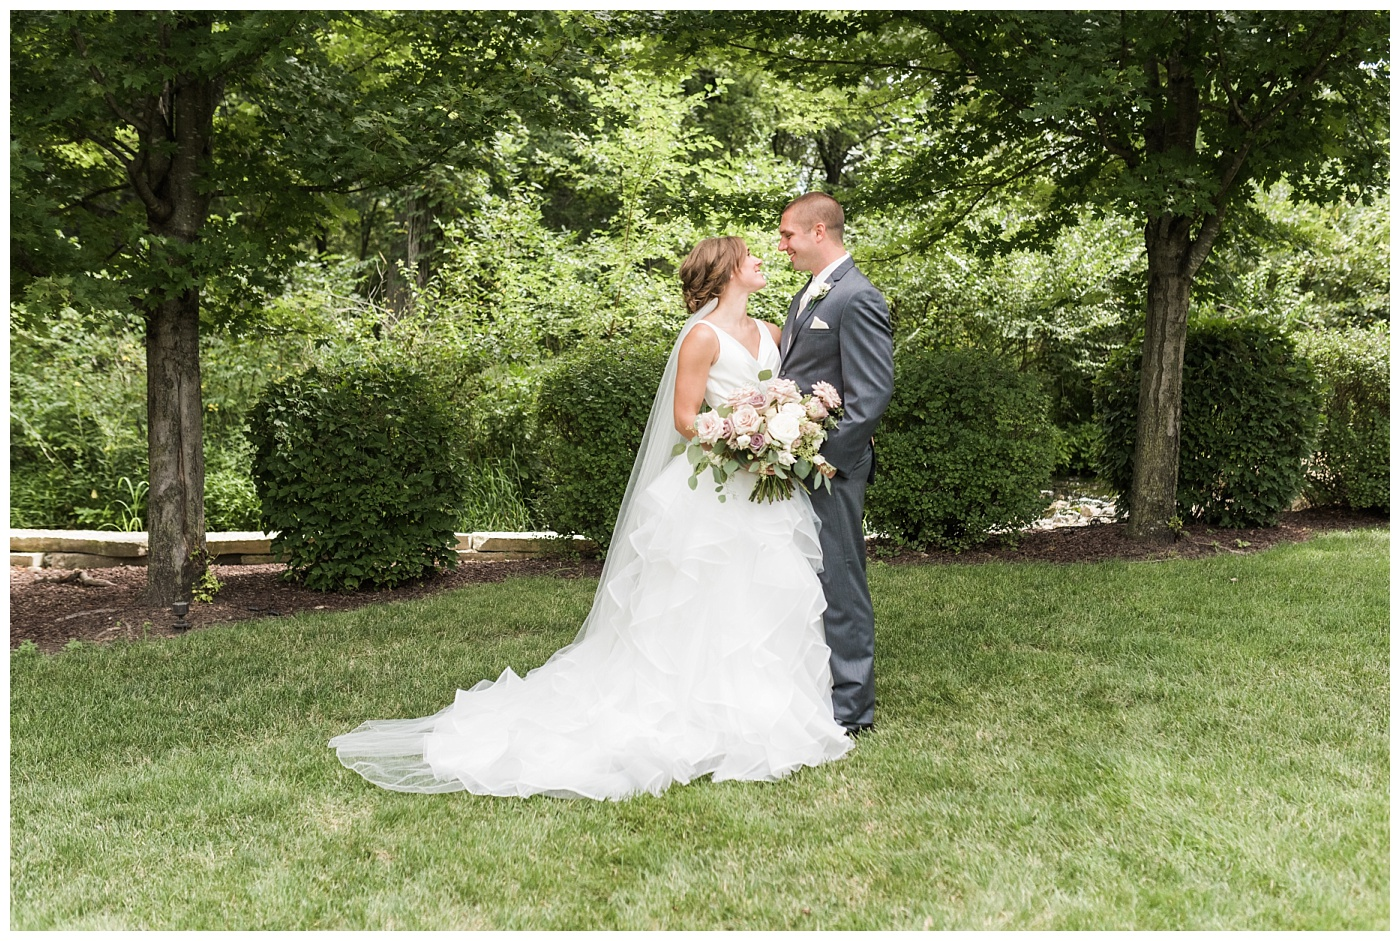 Stephanie Marie Photography Newman Catholic Center Ceremony Bella Sala Reception Tiffin Iowa City Wedding Photographer Chelsey Justin Meyers_0019-1.jpg